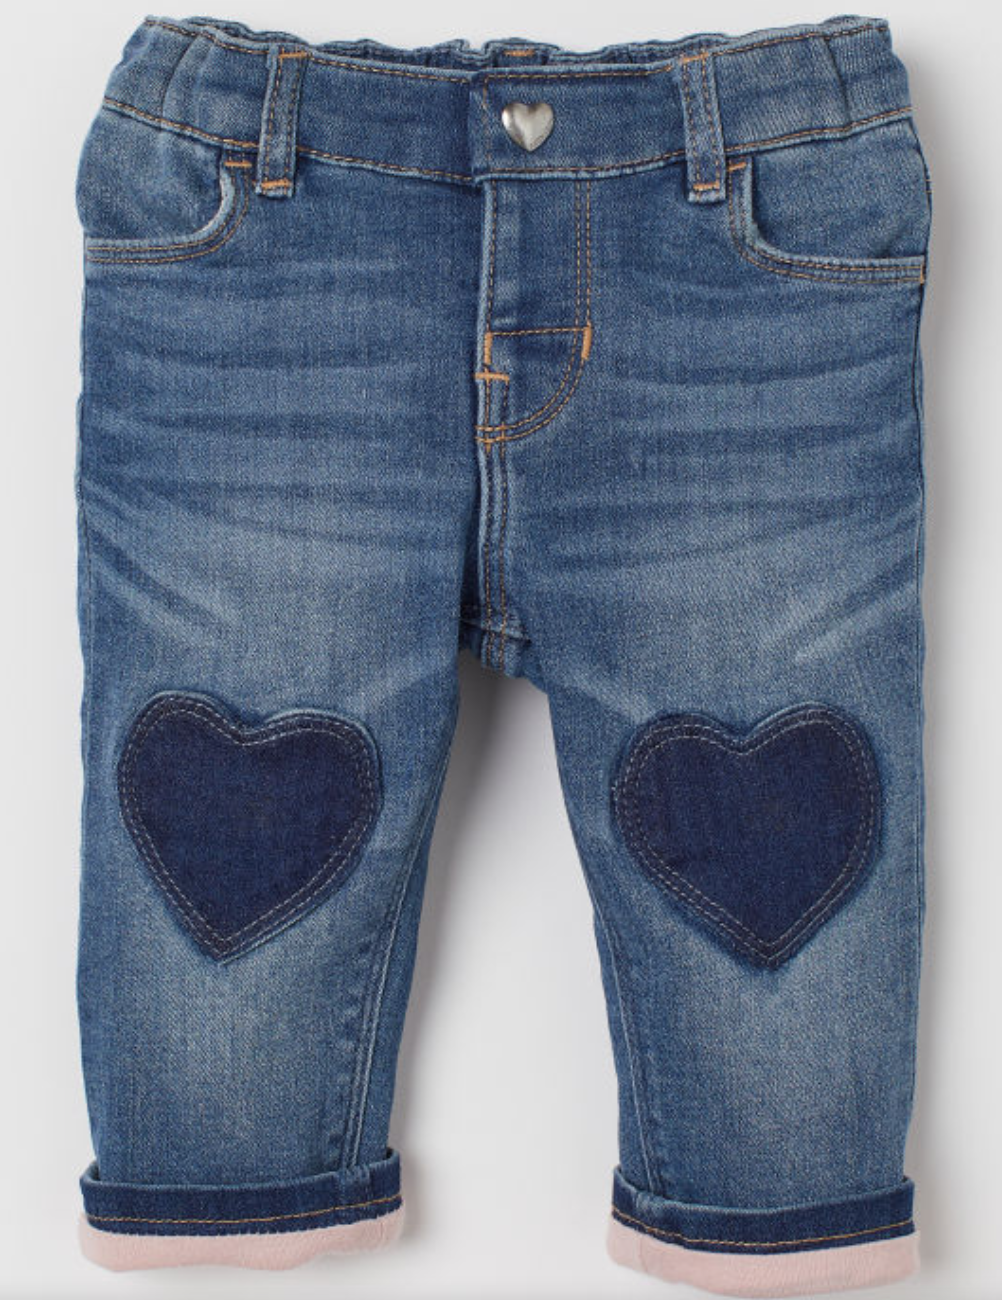 Jersey-lined Jeans